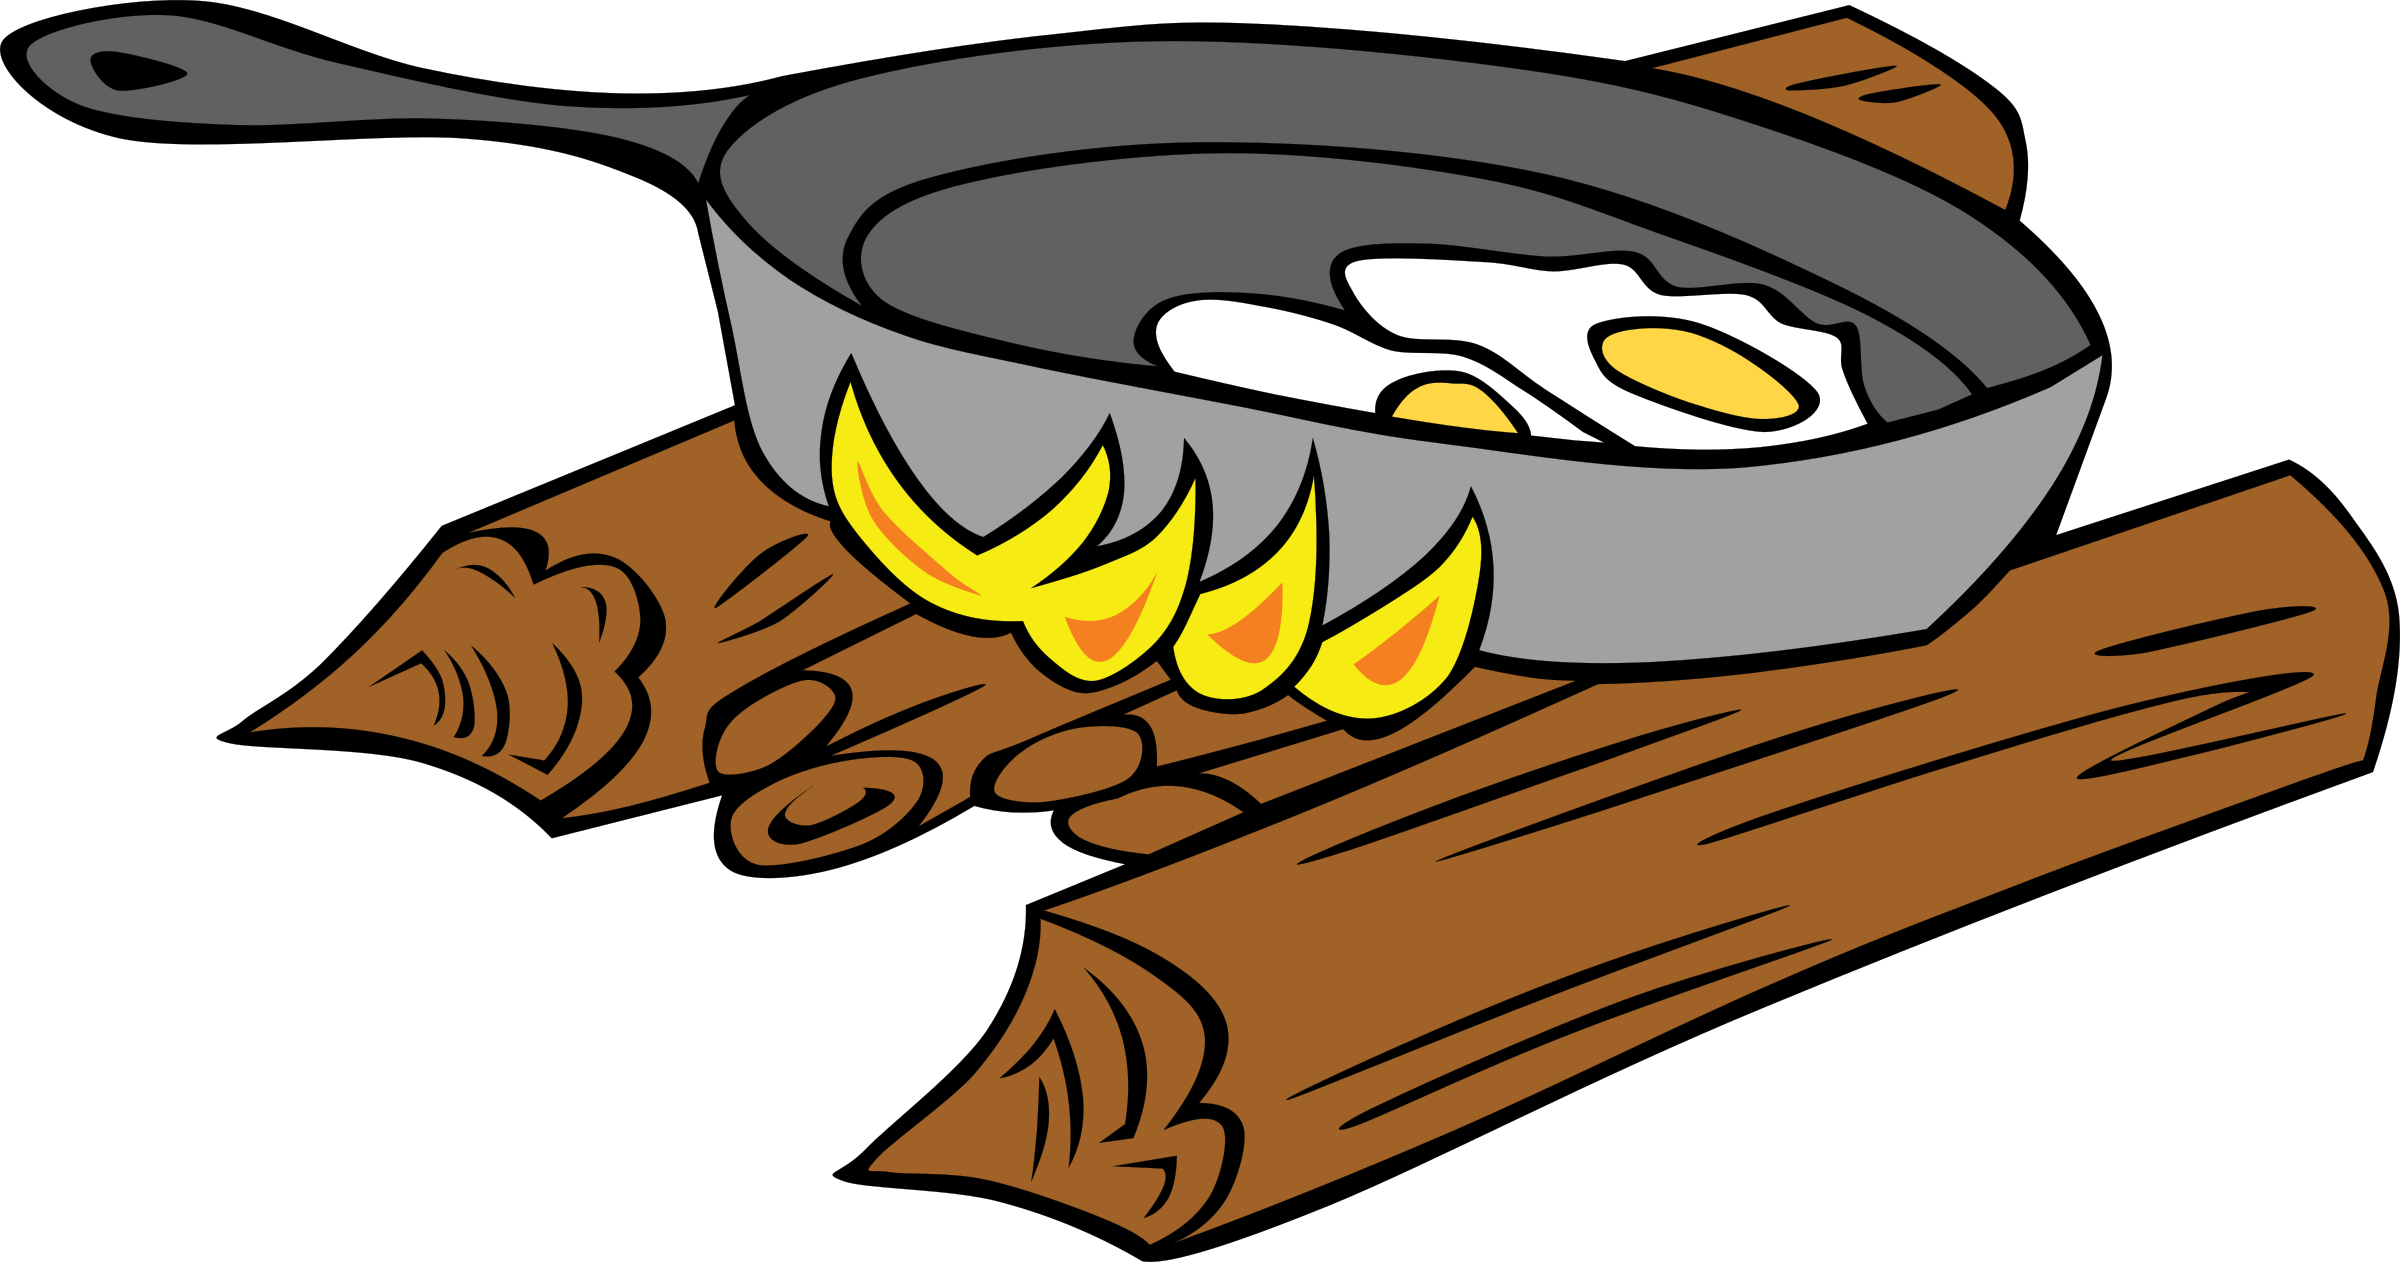 Clipart fire campfire. Campfires and cooking cranes